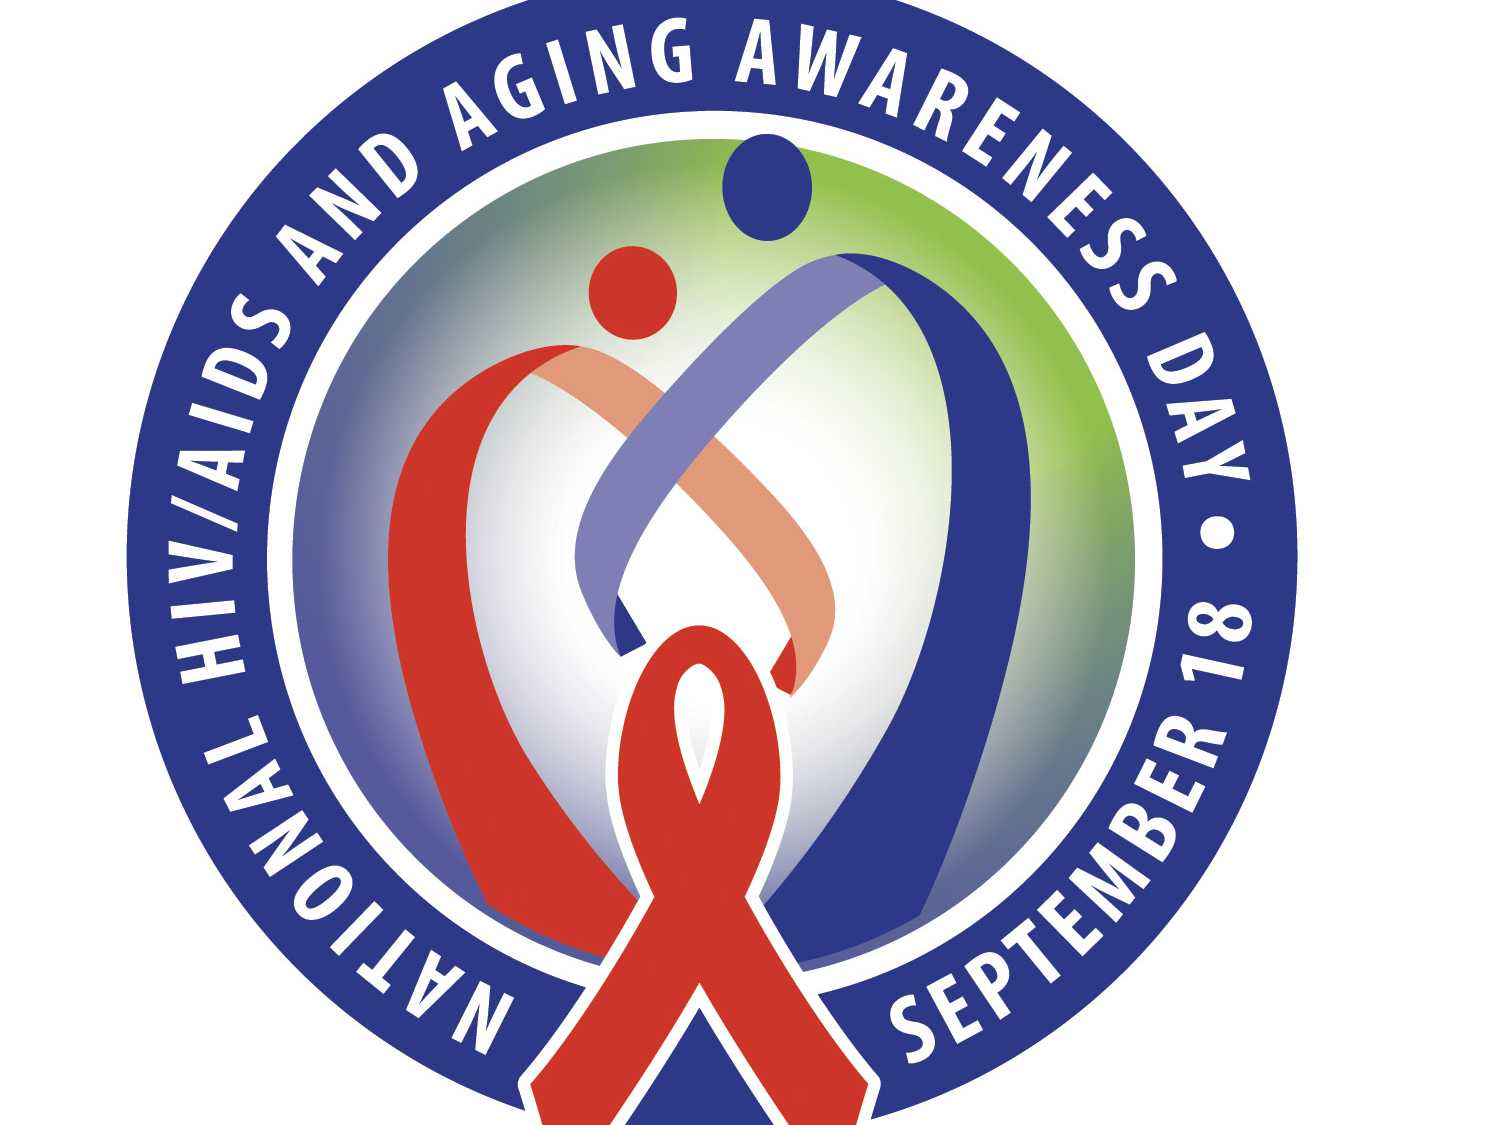 September 18 is National HIV/AIDS and Aging Awareness Day